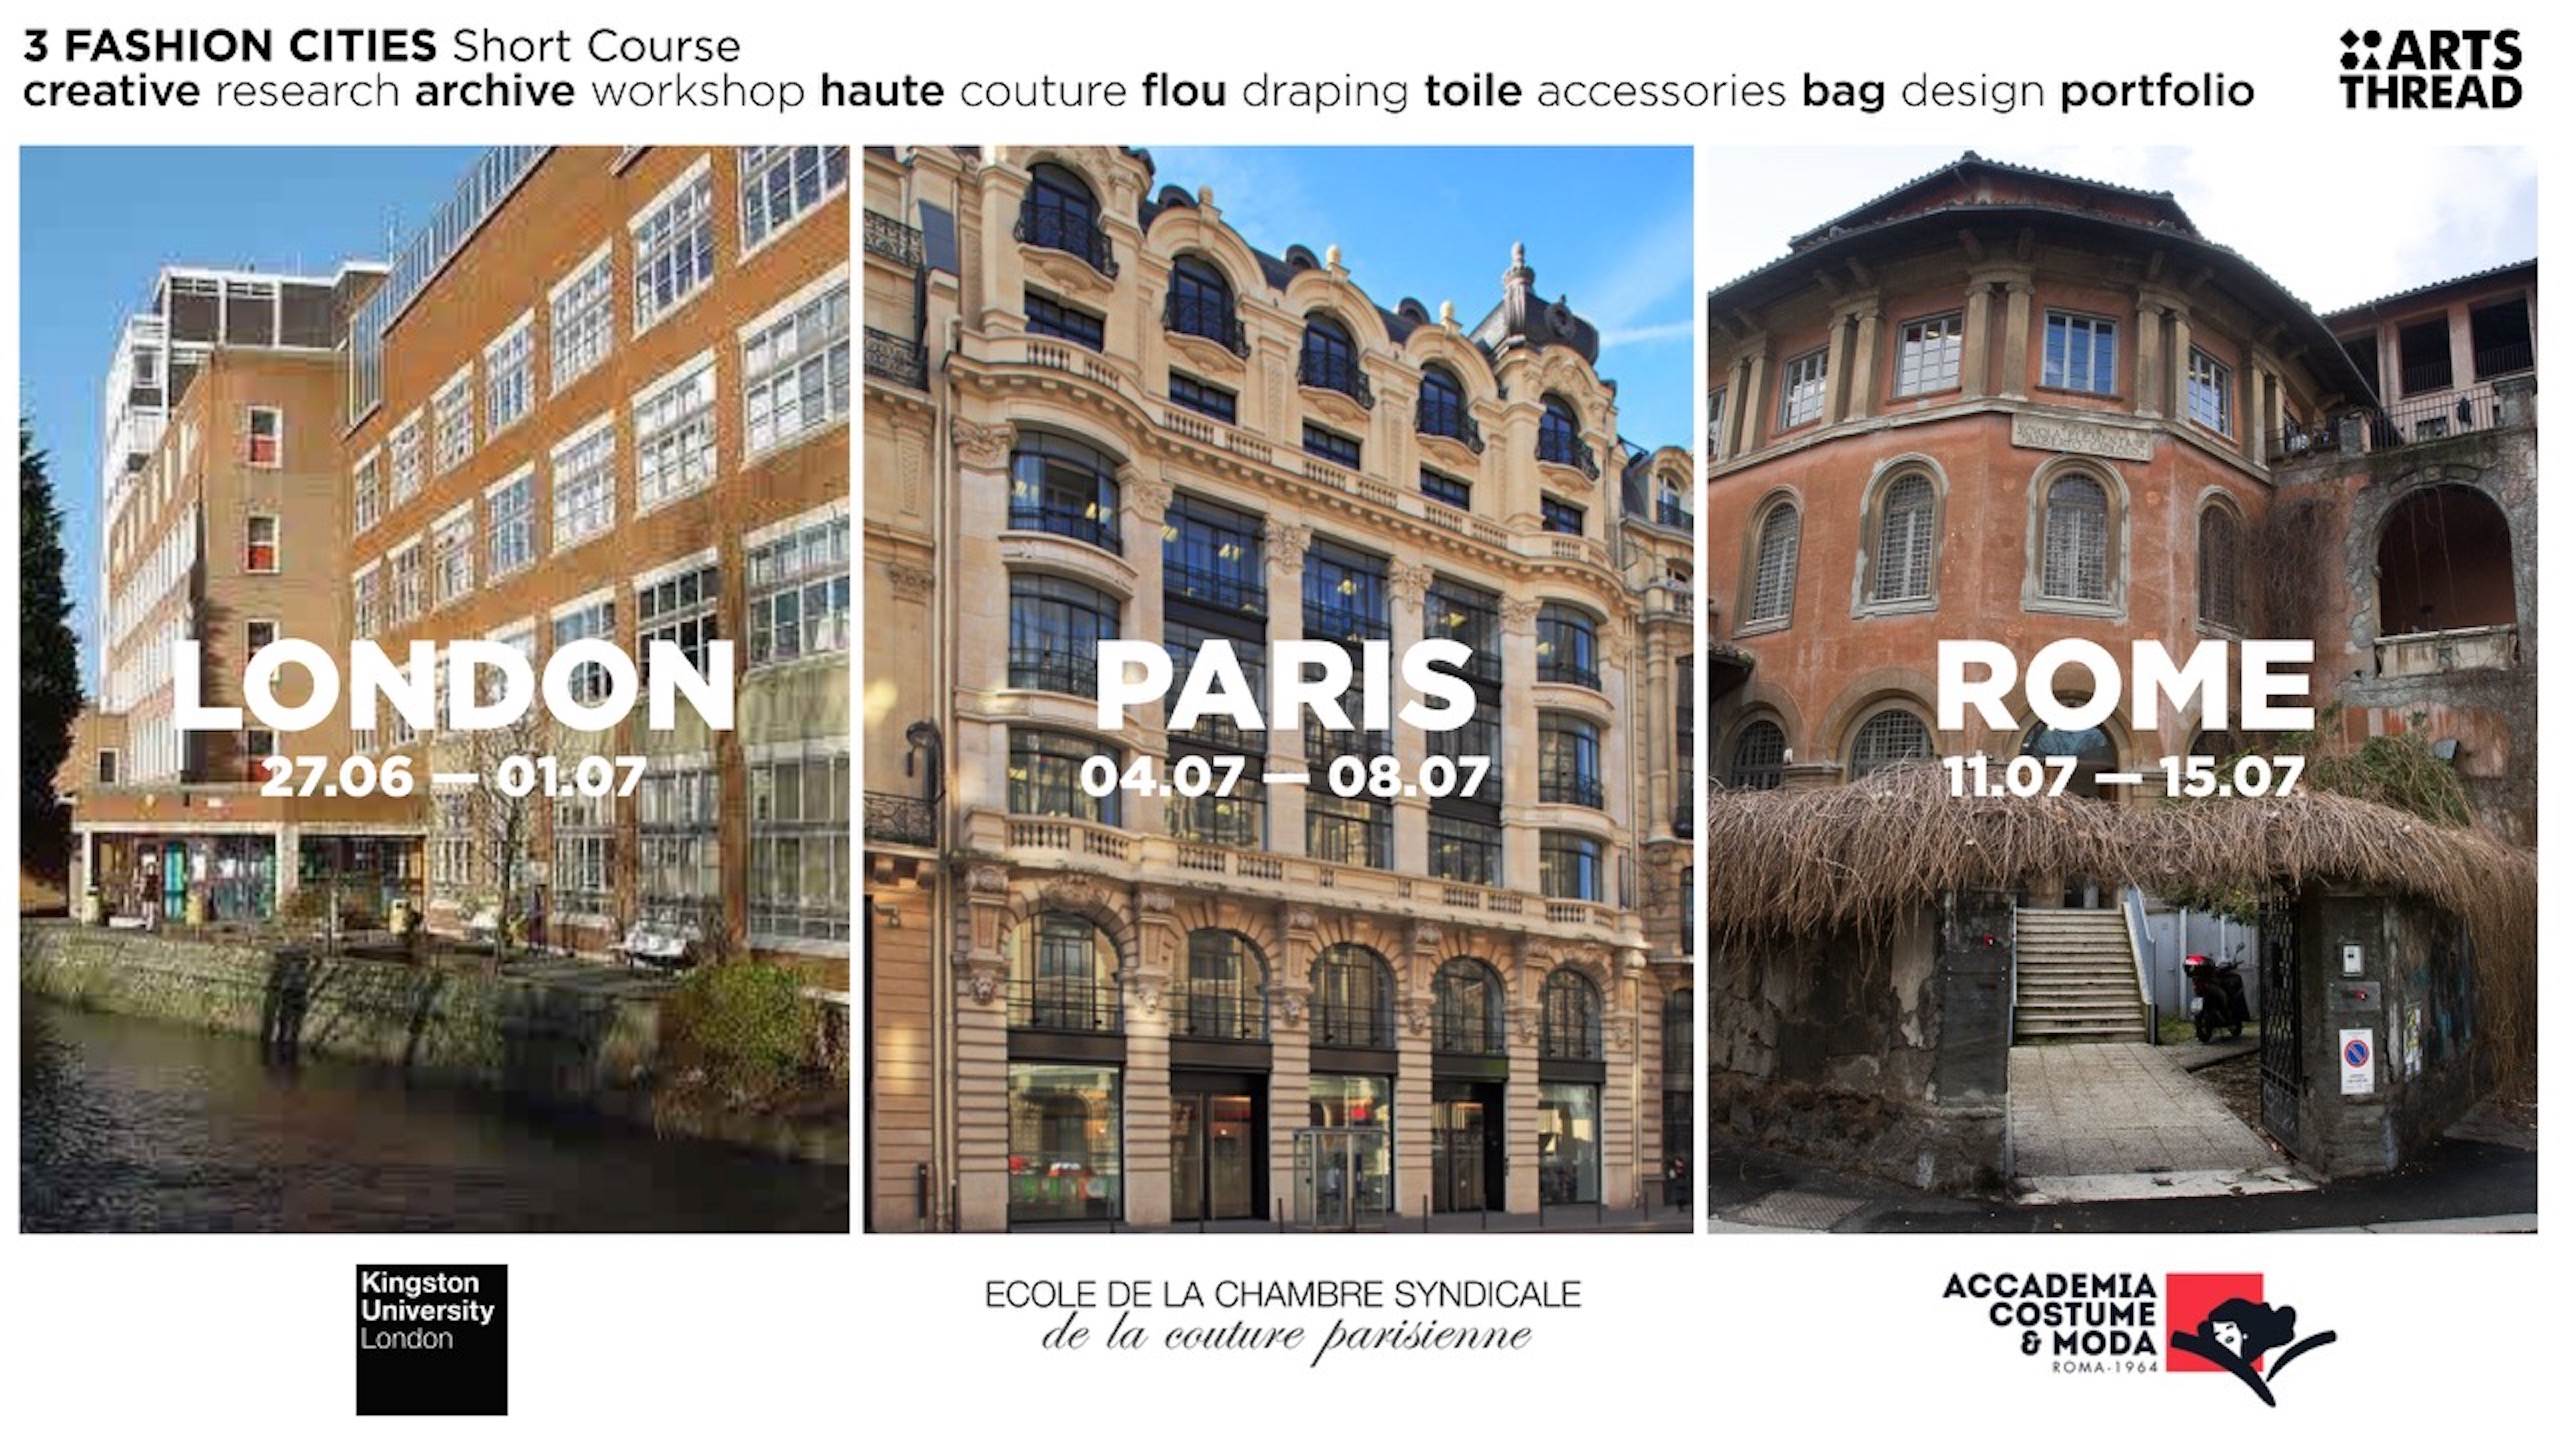 Ecole De La Chambre Syndicale Paris Arts Thread 3 Fashion Cities Short Course Call Out Arts Thread